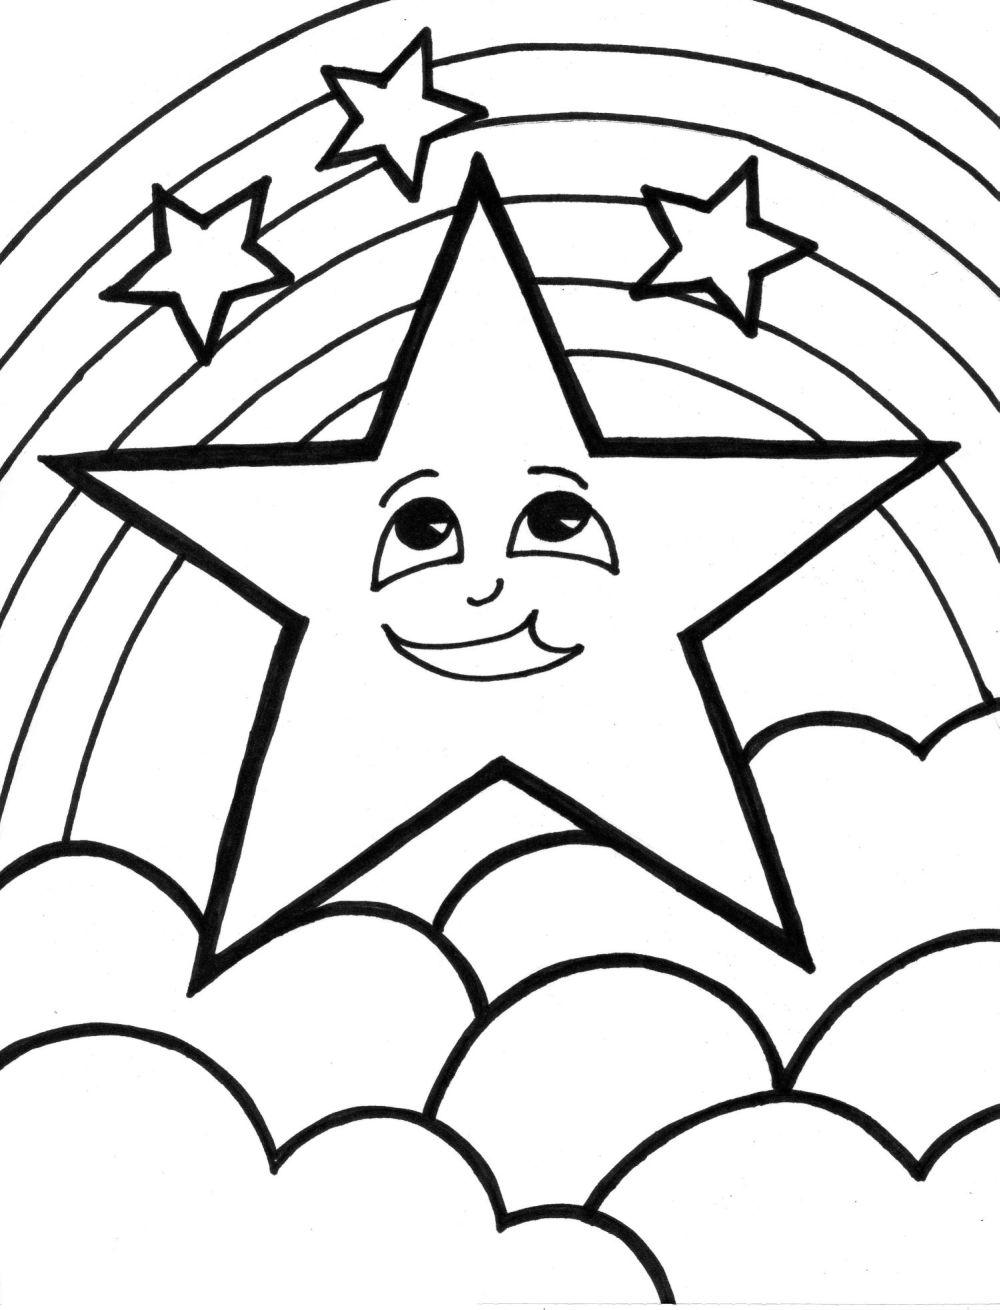 coloring pages for stars - photo#9